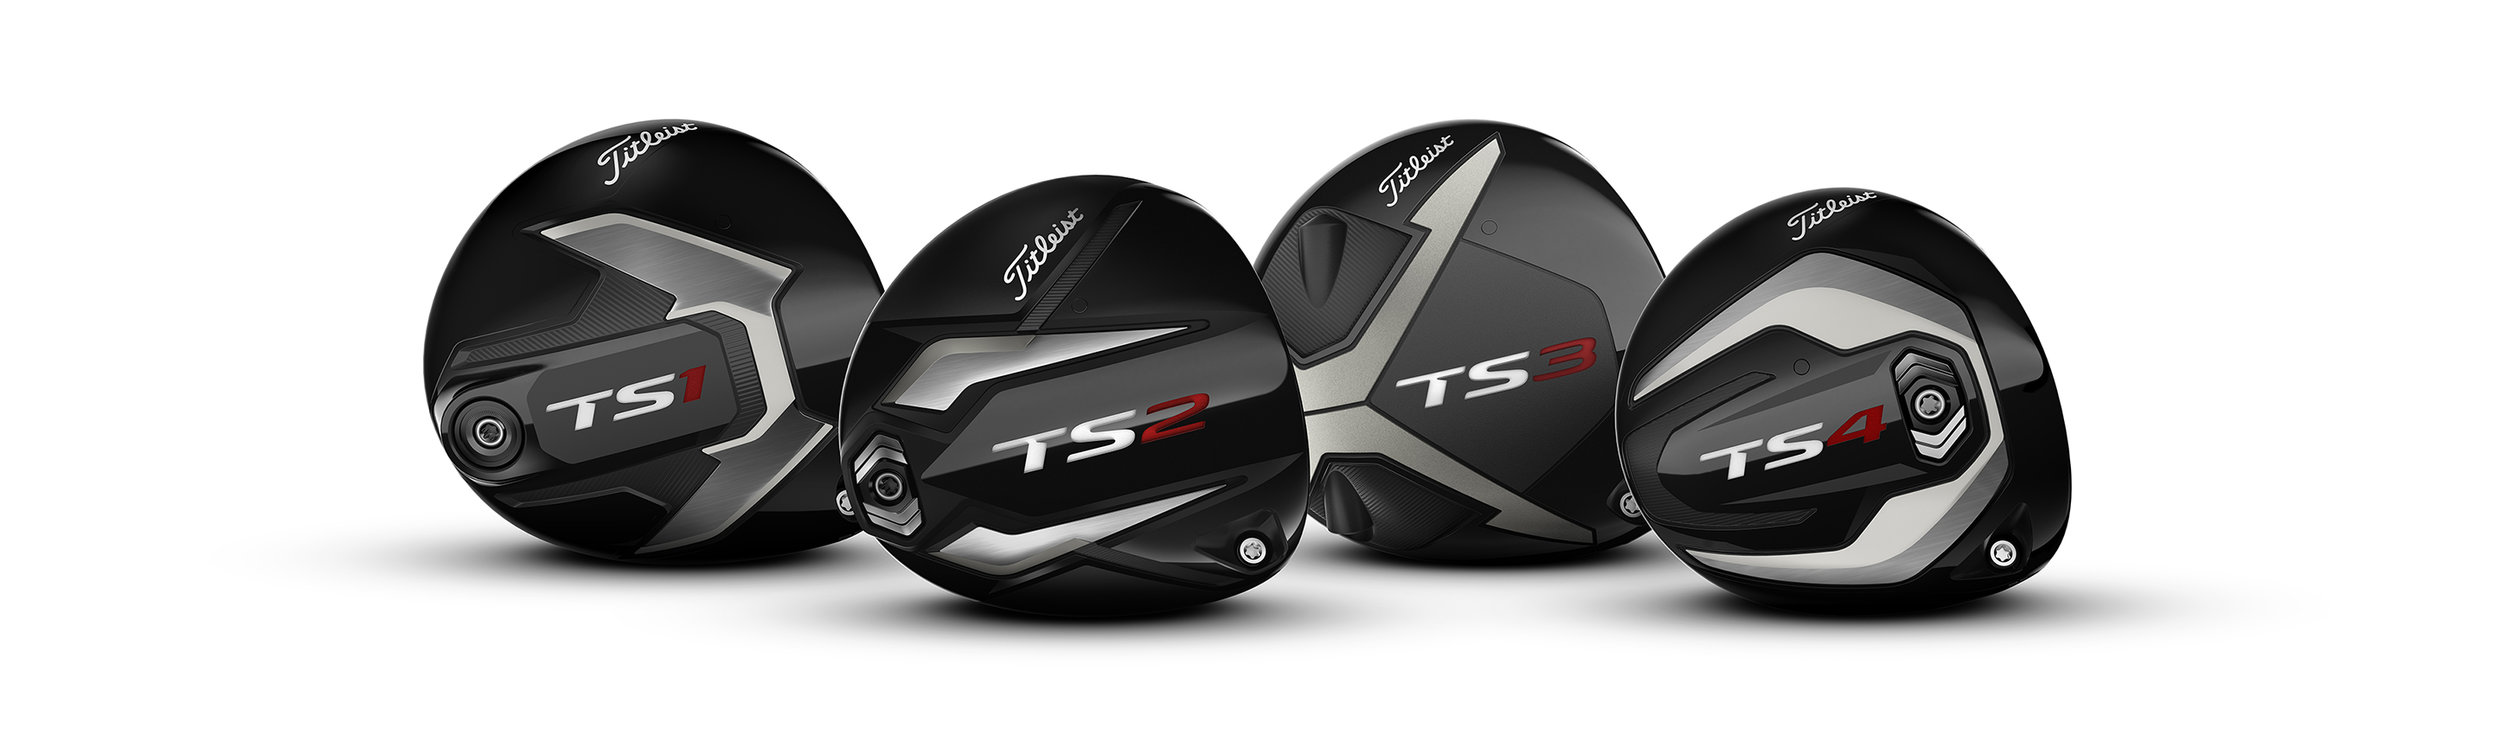 The full family of TS1 drivers is now at four options.